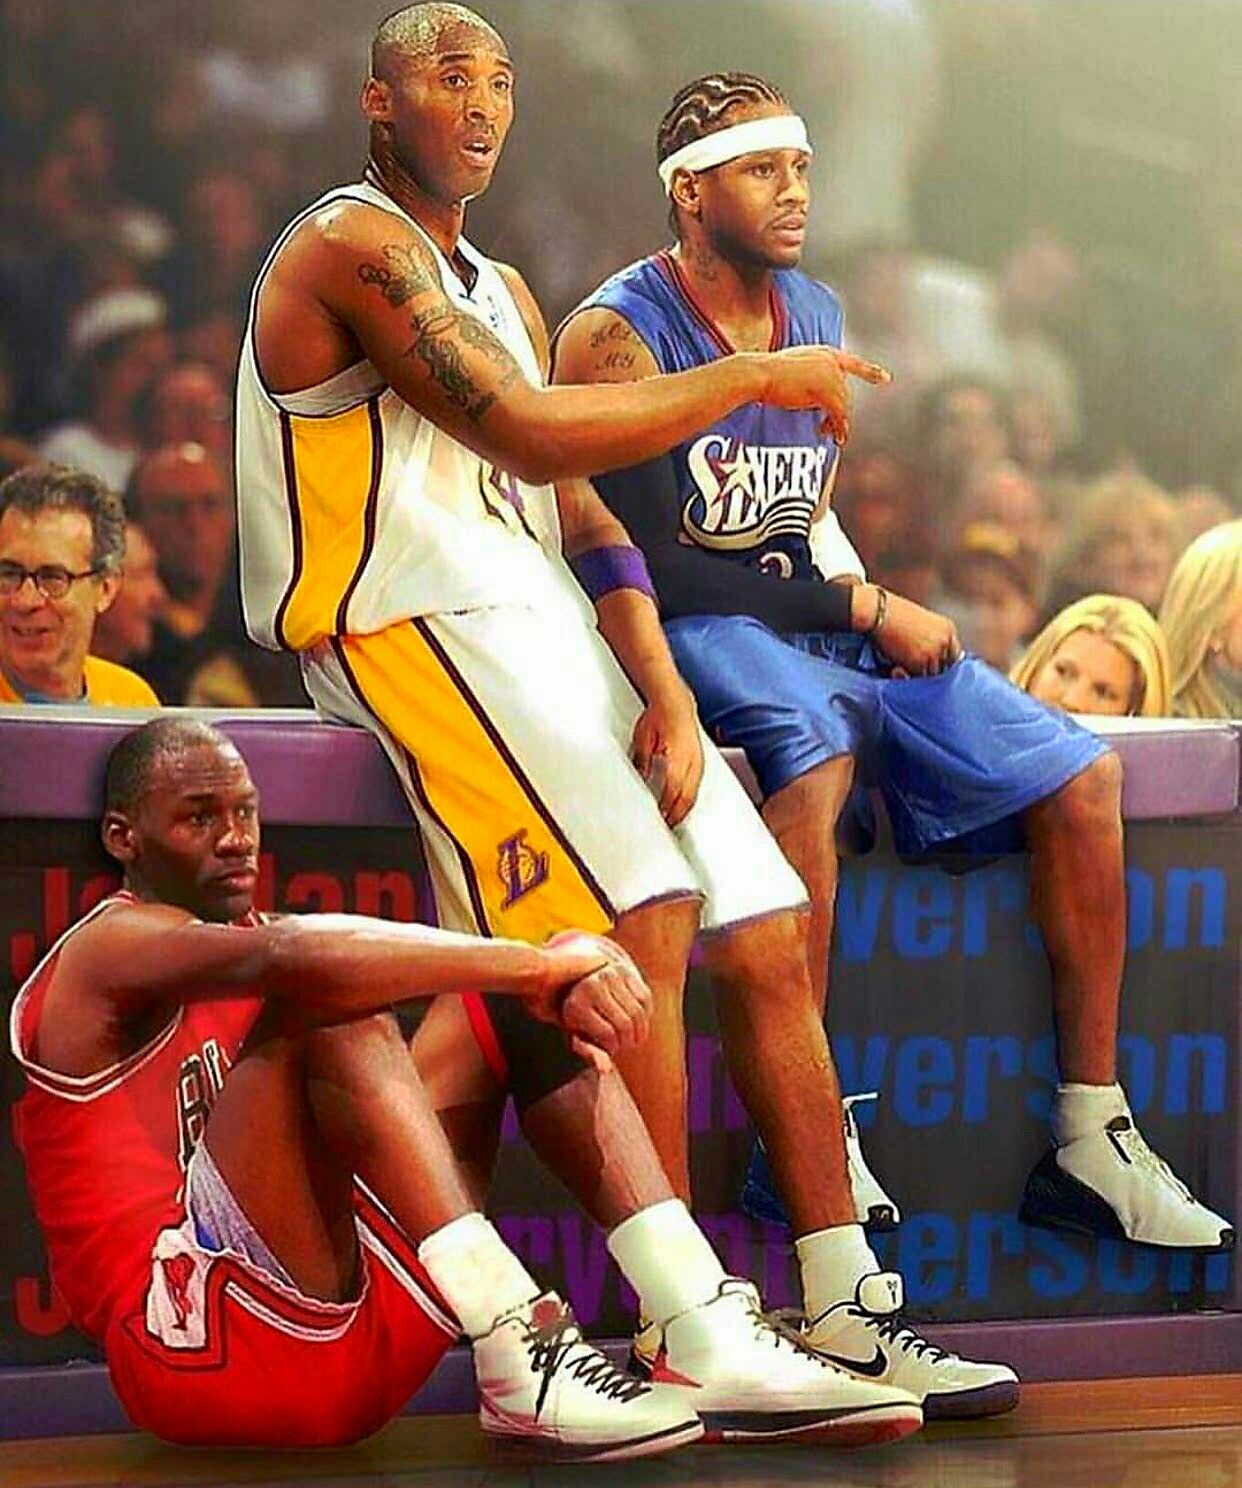 3 Legendary killers in NBA. Michael Jordan, Kobe Bryant